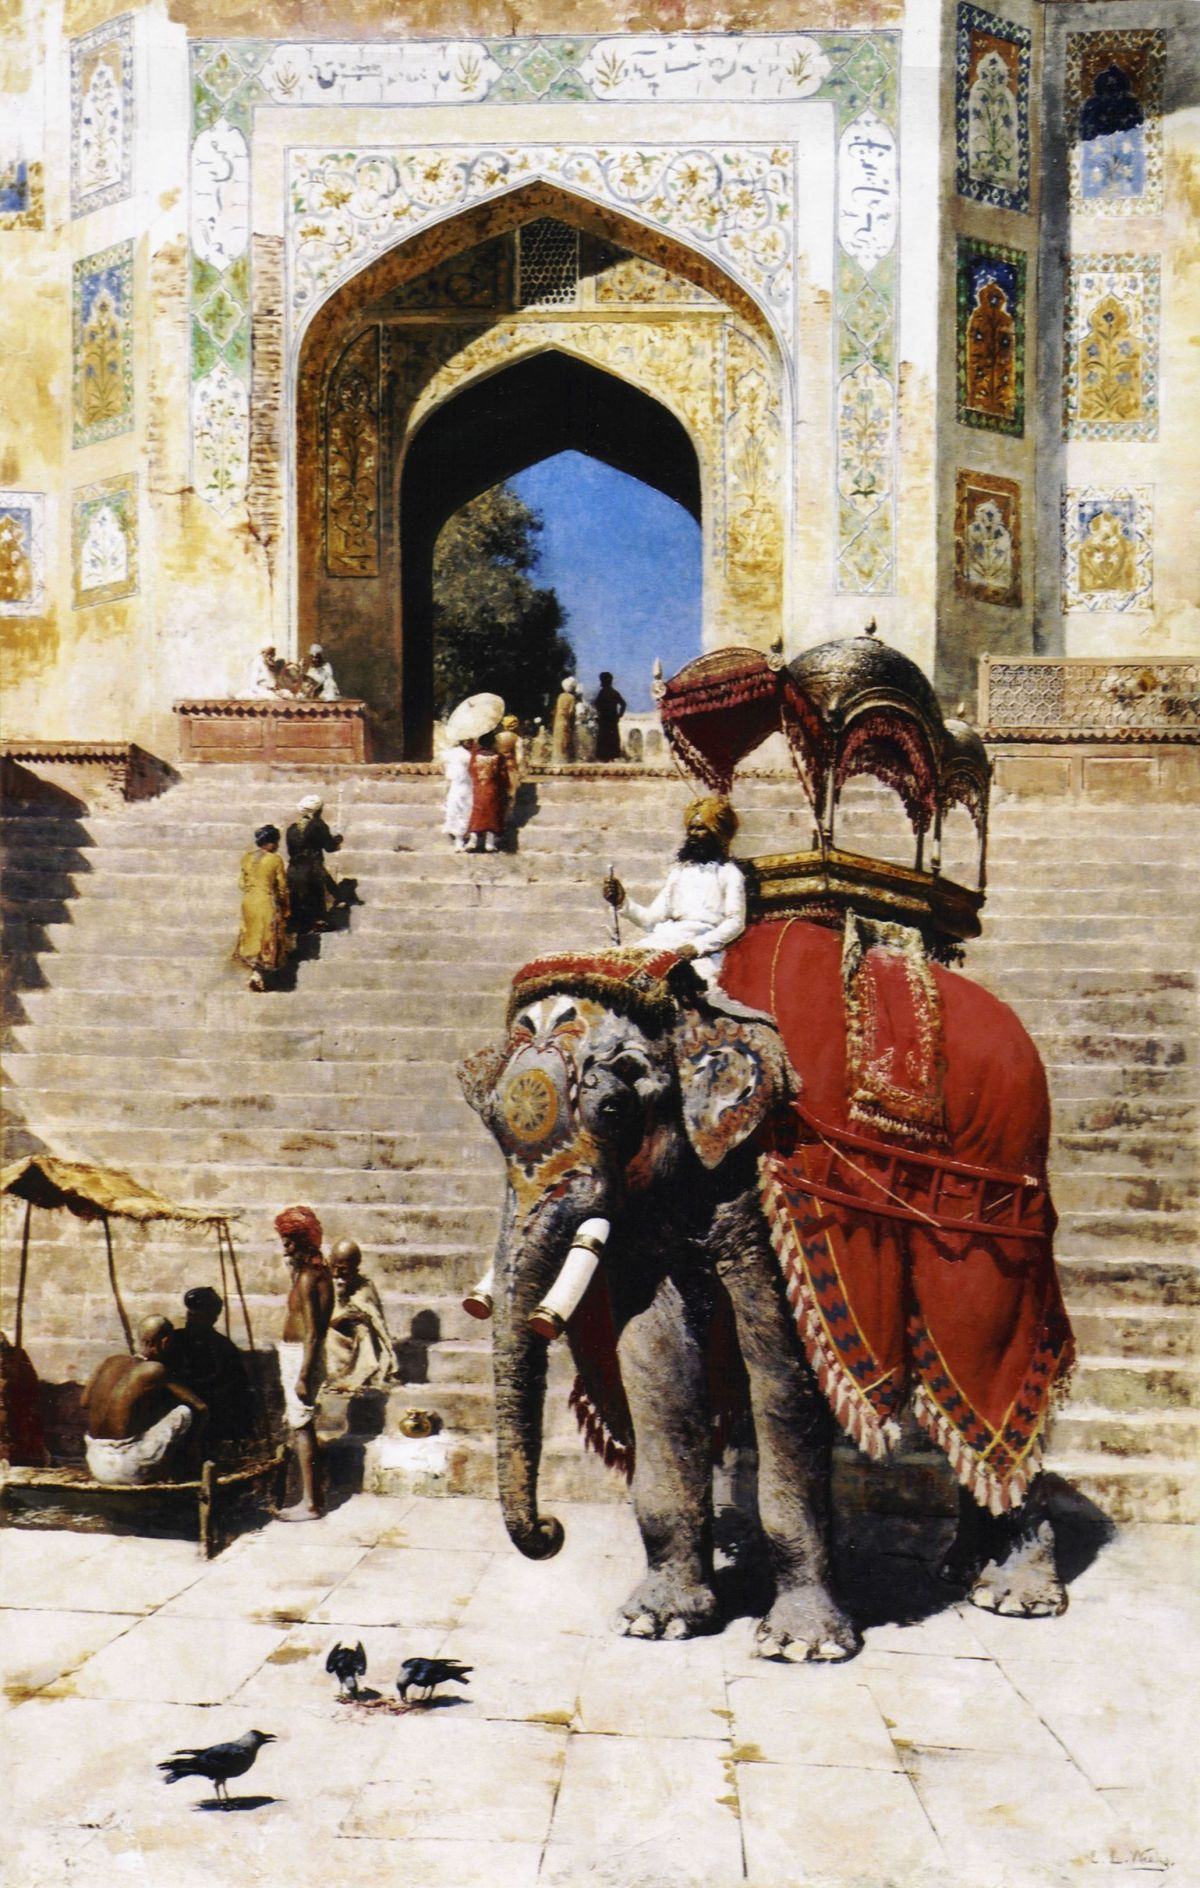 Royal Elephant at the Gateway to the Jami Masjid, Mathura by Edwin Lord Weeks